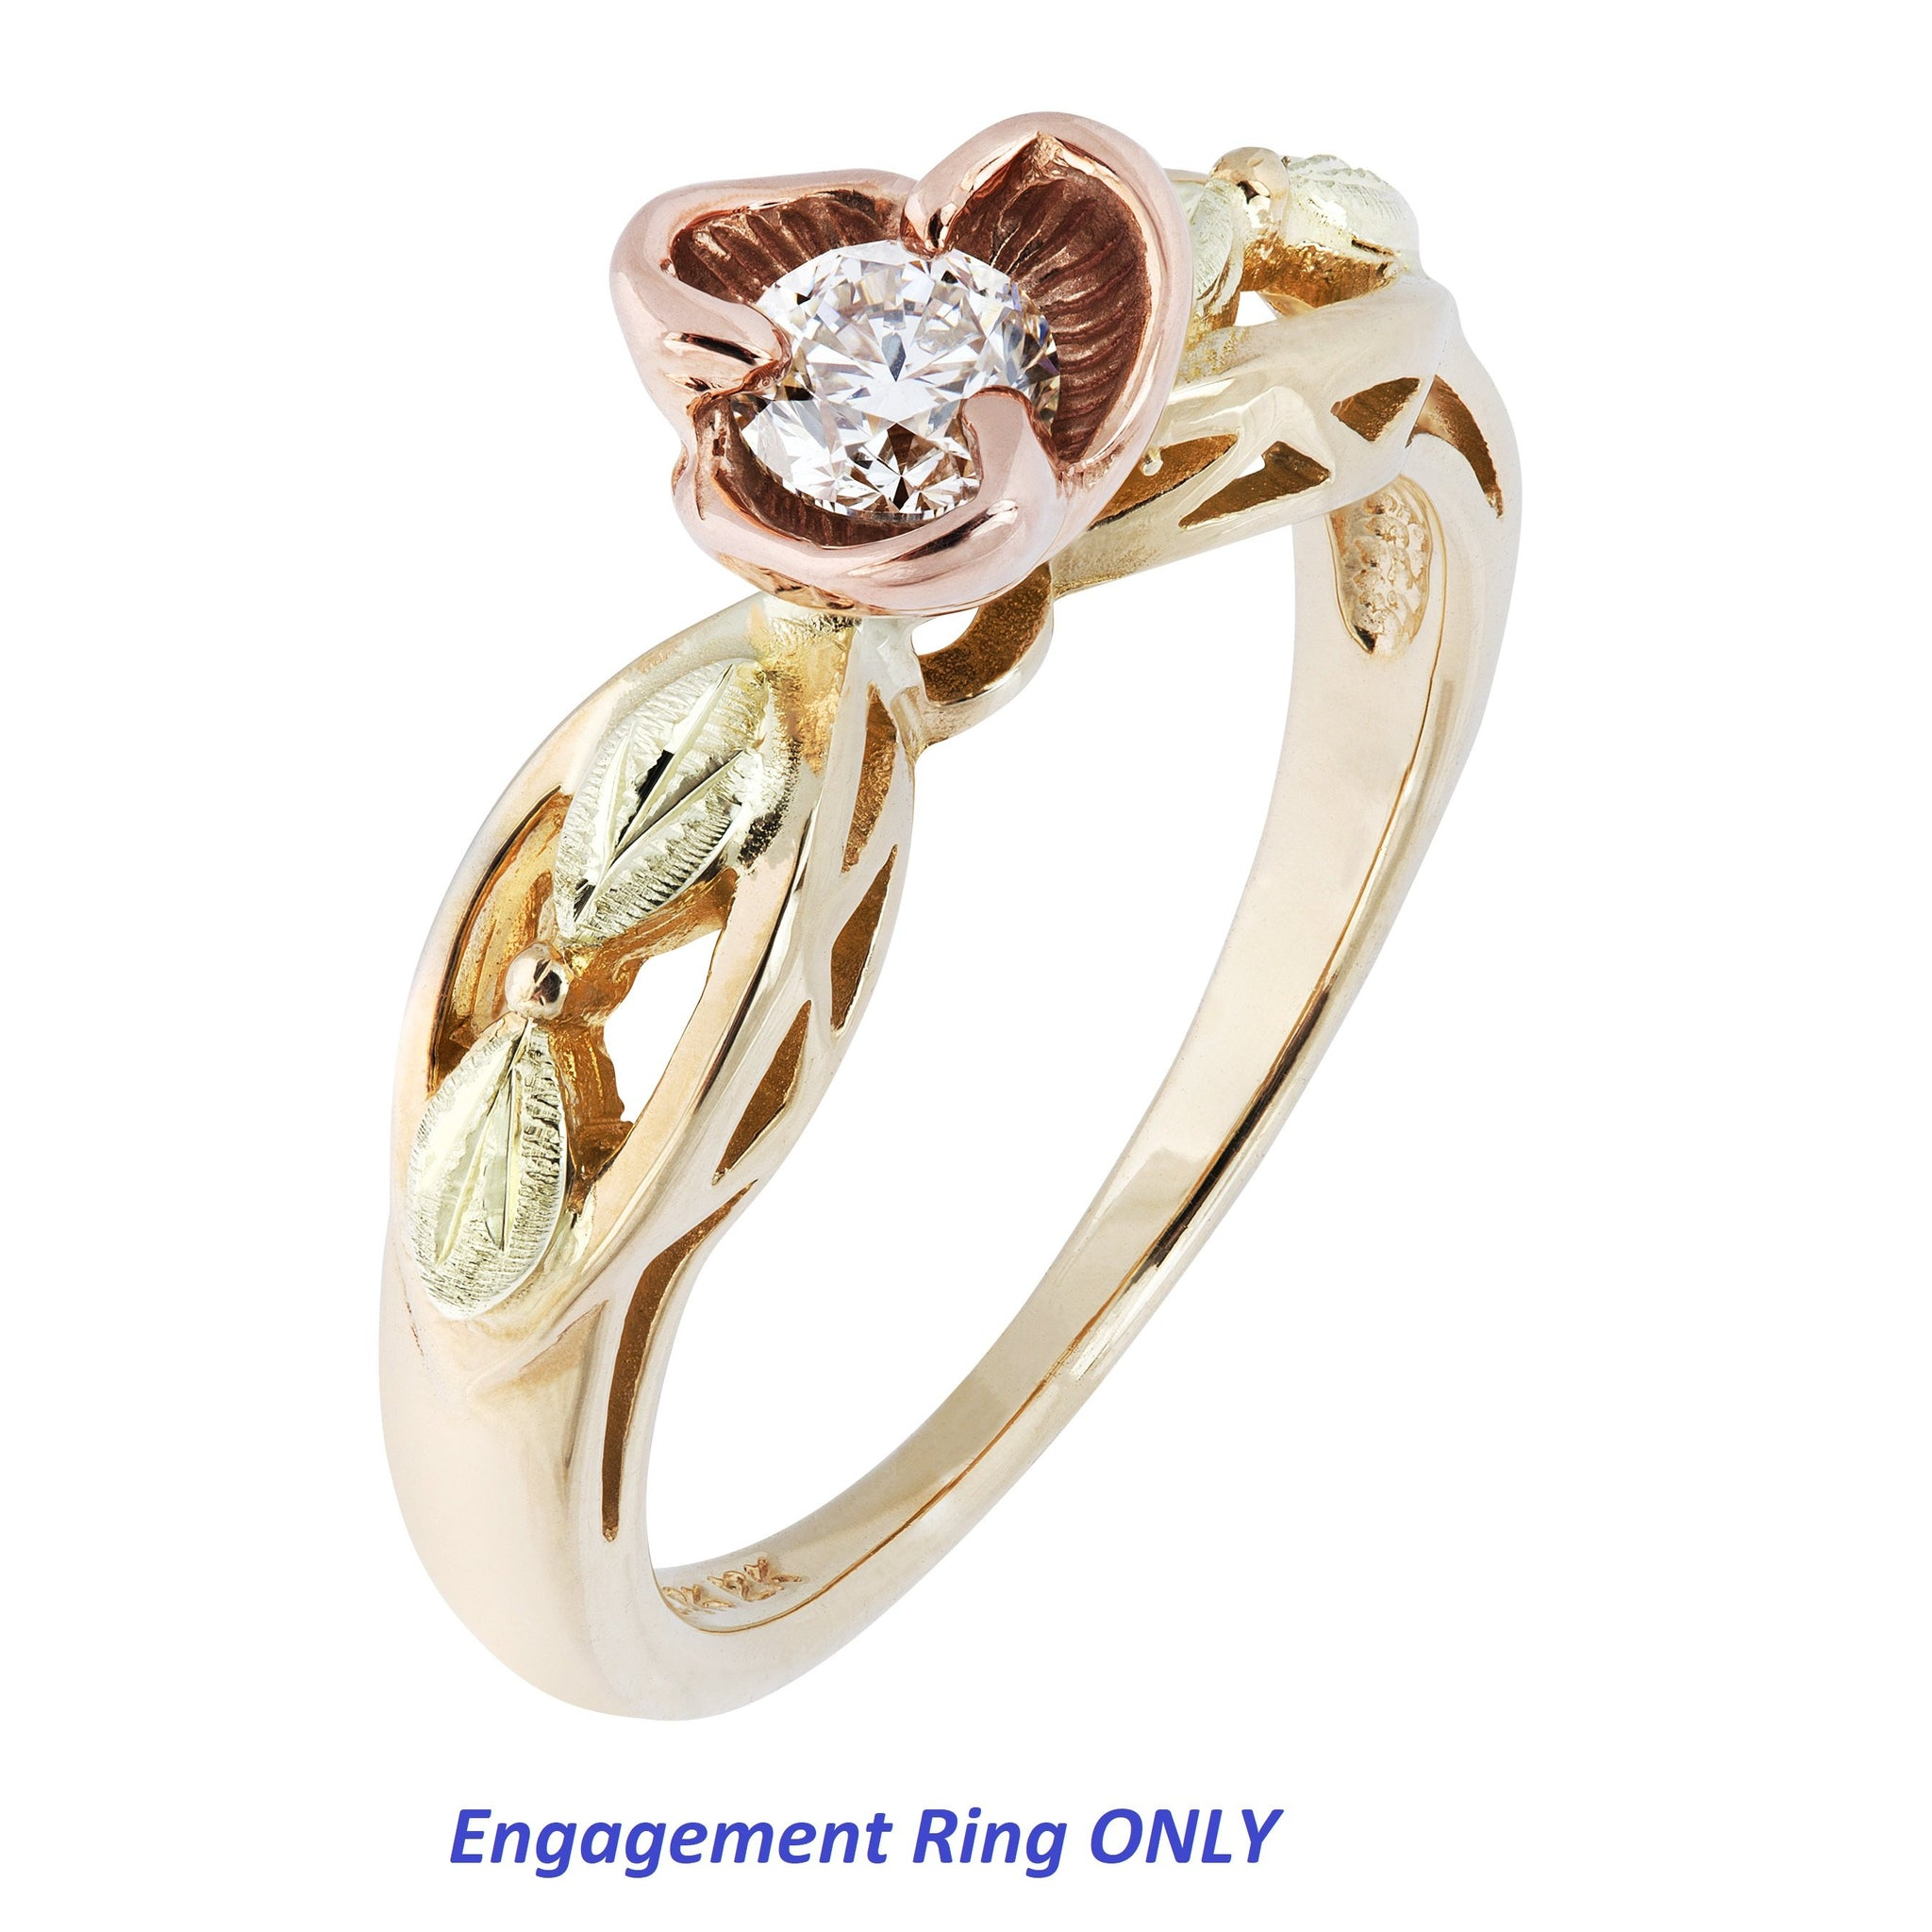 wedding set bliss prod com gold vintage ostkcdn p ring halo diamond tdw src engagement jewellery white and